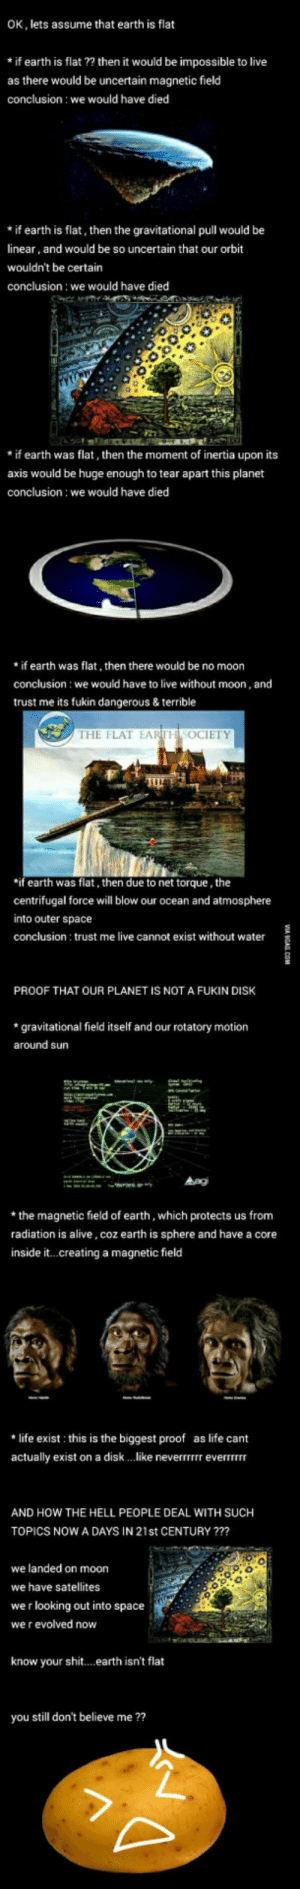 Earth is not flat (scientific explanation): OK, lets assume that earth is flat  *if earth is flat ?? then it would be impossible to live  as there would be uncertain magnetic field  conclusion we would have died  *if earth is flat, then the gravitational pull would be  linear, and would be so uncertain that our orbit  wouldn't be certain  conclusion: we would have died  * if earth was flat, then the moment of inertia upon its  axis would be huge enough to tear apart this planet  conclusion we would have died  *if earth was flat, then there would be no moon  conclusion: we would have to live without moon, and  trust me its ukin dangerous & terrible  THE FLAT EARTH SOCIETY  if earth was flat, then due to net torque, the  centrifugal force will blow our ocean and atmosphere  into outer space  conclusion trust me live cannot exist without water  PROOF THAT OUR PLANET IS NOT A FUKIN DISK  *gravitational field itself and our rotatory motion  around sun  *the magnetic field of earth, which protects us from  radiation is alive, coz earth is sphere and have a core  inside it...creating a magnetic field  * life exist this is the biggest proof as life cant  actually exist on a disk like neverrrrrr everTTrrr  AND HOW THE HELL PEOPLE DEAL WITH SUCH  TOPICS NOW A DAYS IN 21st CENTURY ??  we landed on moon  we have satellites  we r looking out into space  we r evolved novw  know your shit... earth isn't flat  you still don't believe me ?? Earth is not flat (scientific explanation)